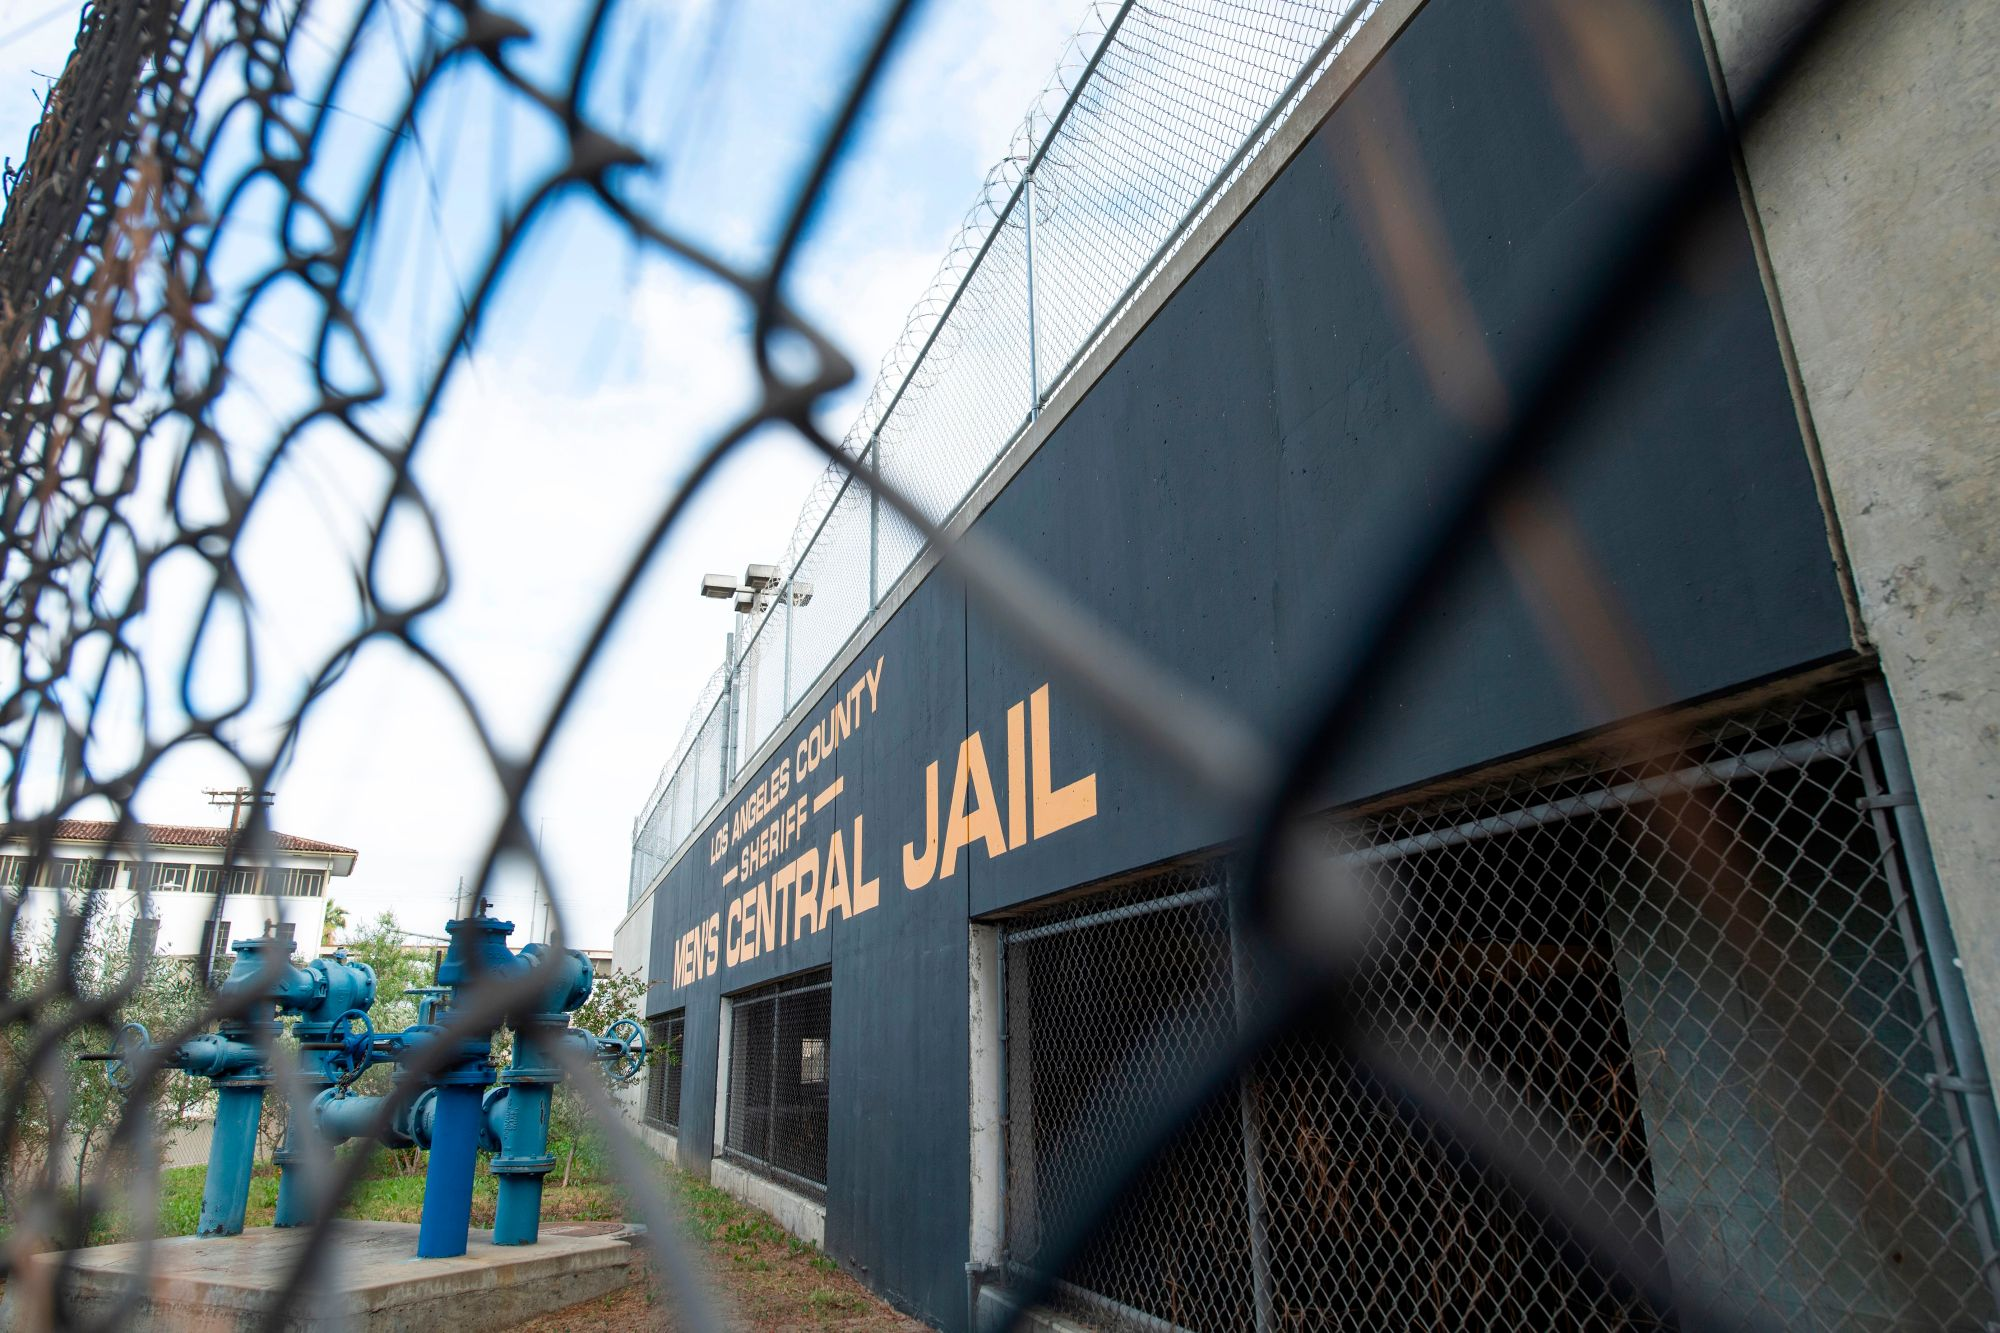 The outside of the Men's Central Jail is seen on May 12, 2020, in Los Angeles, California. (VALERIE MACON/AFP via Getty Images)